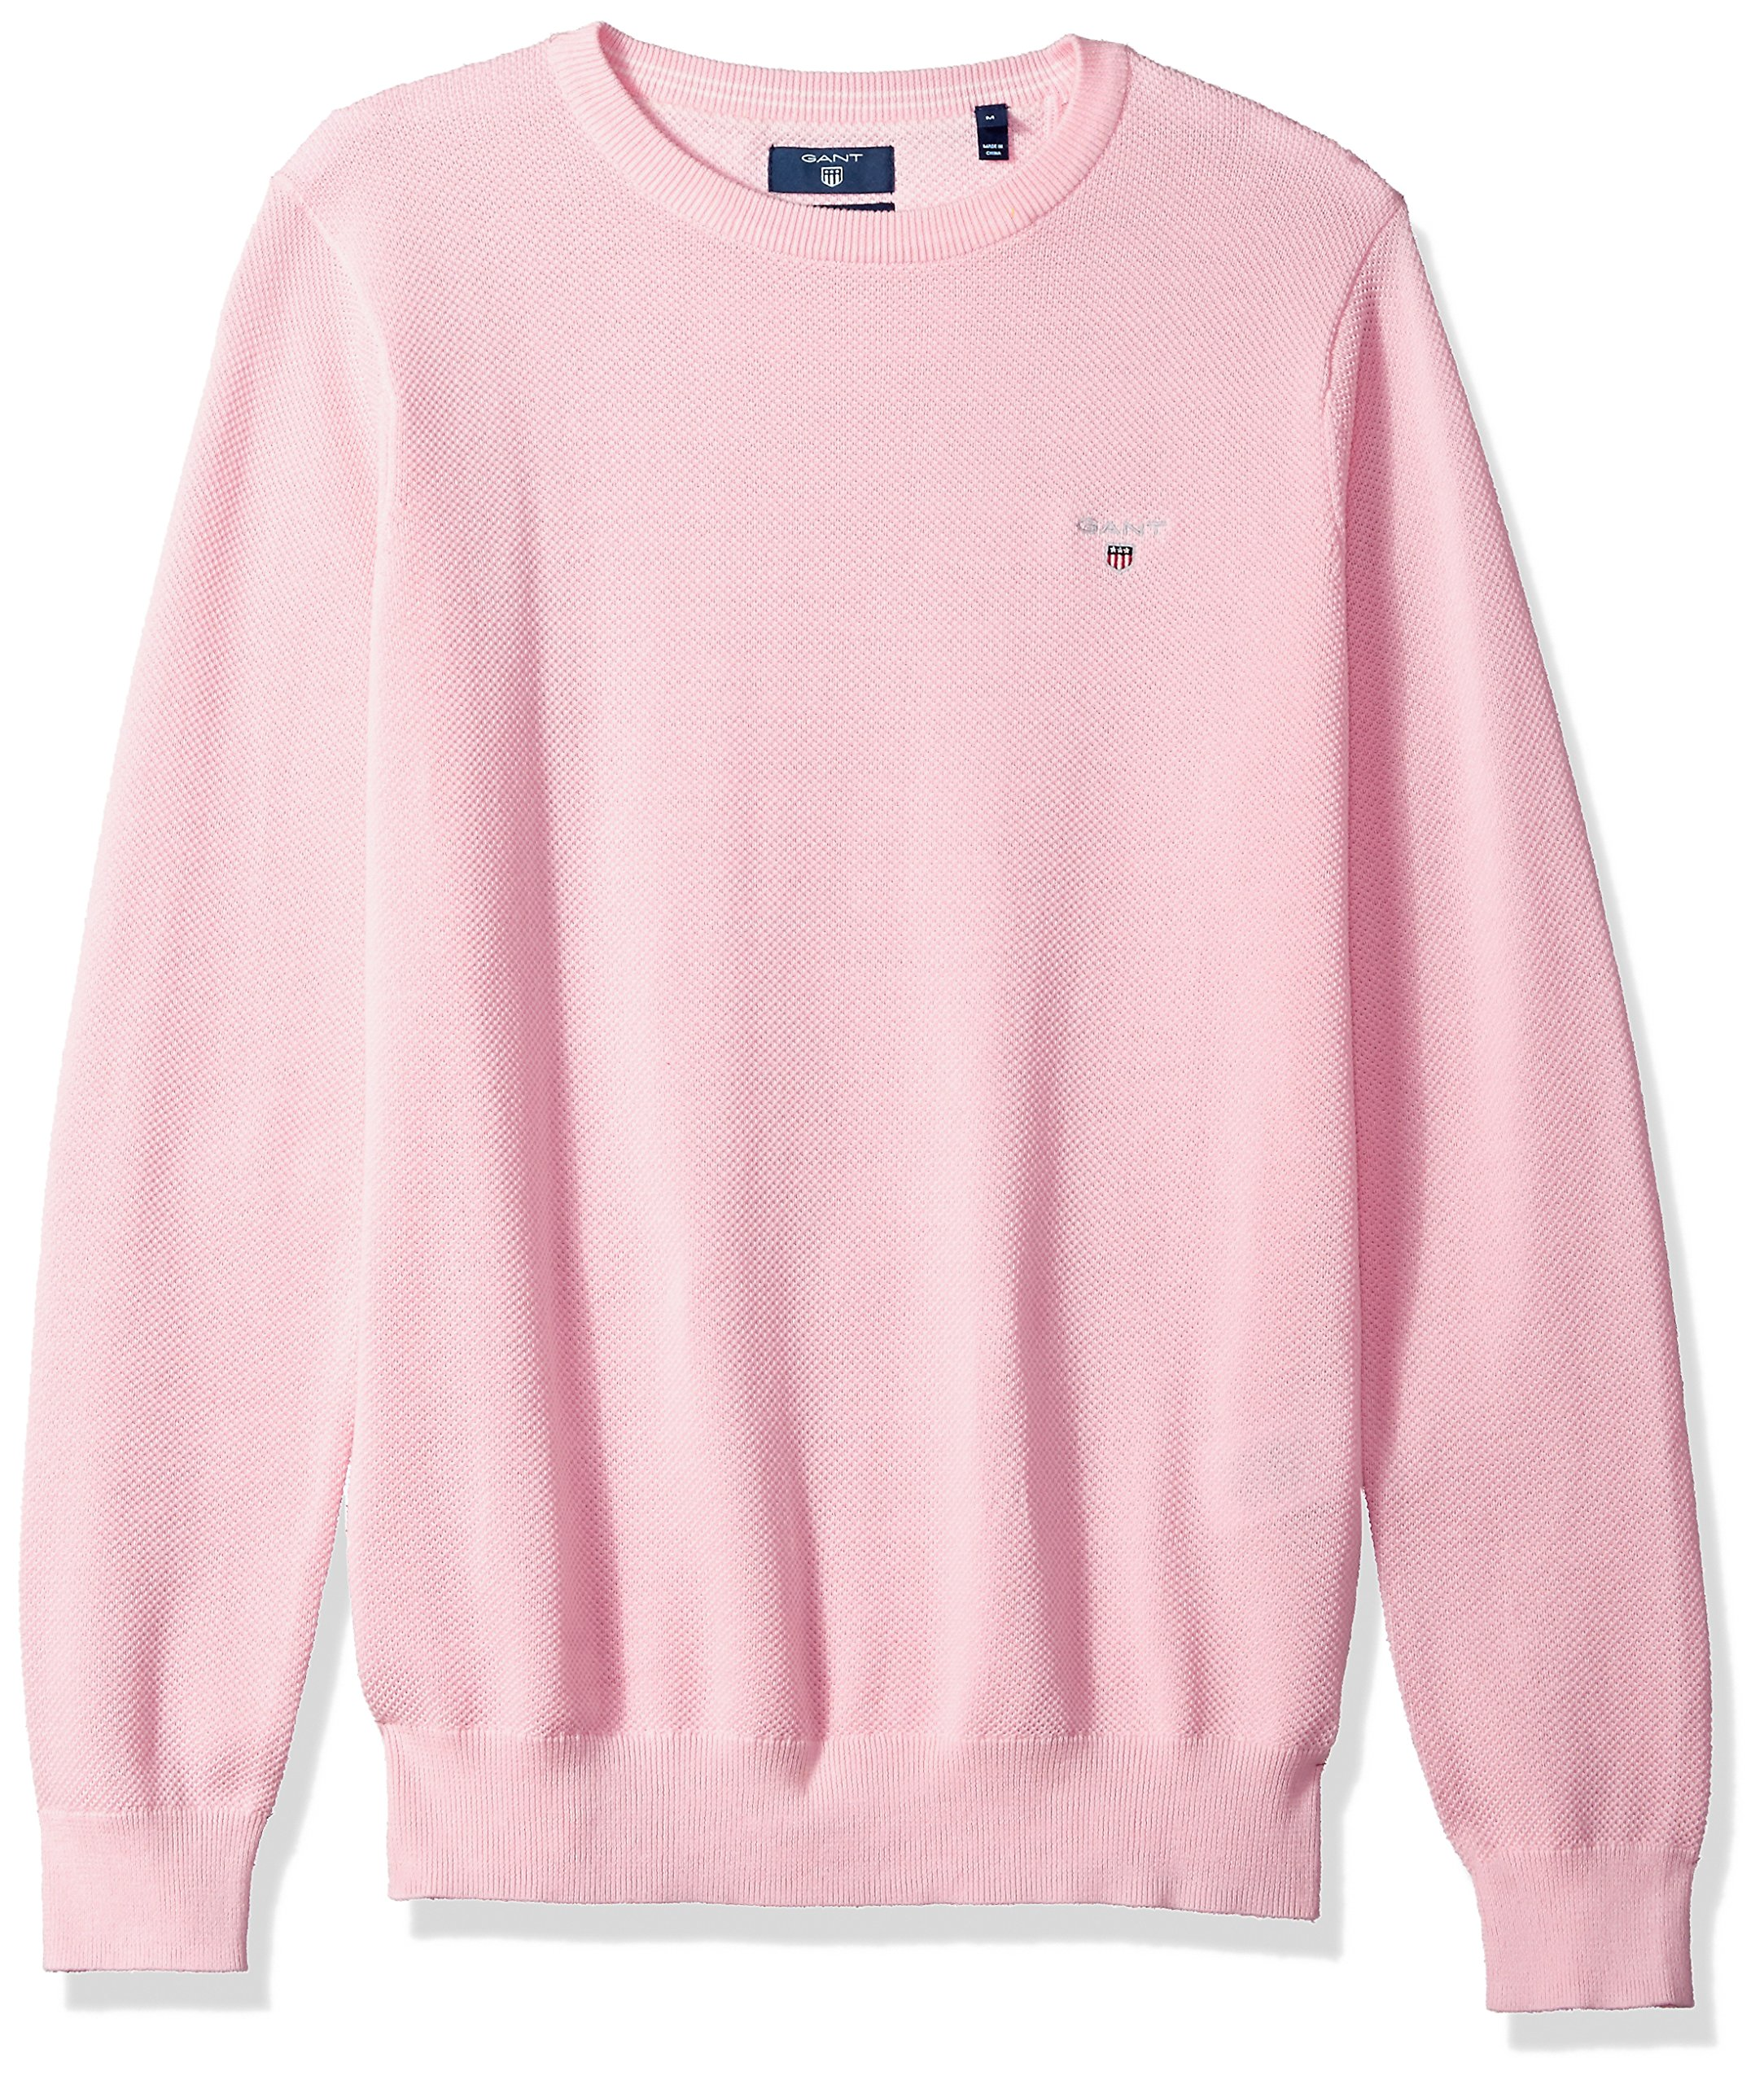 GANT Men's Pique Cotton Crewneck Sweater, California Pink, XXL